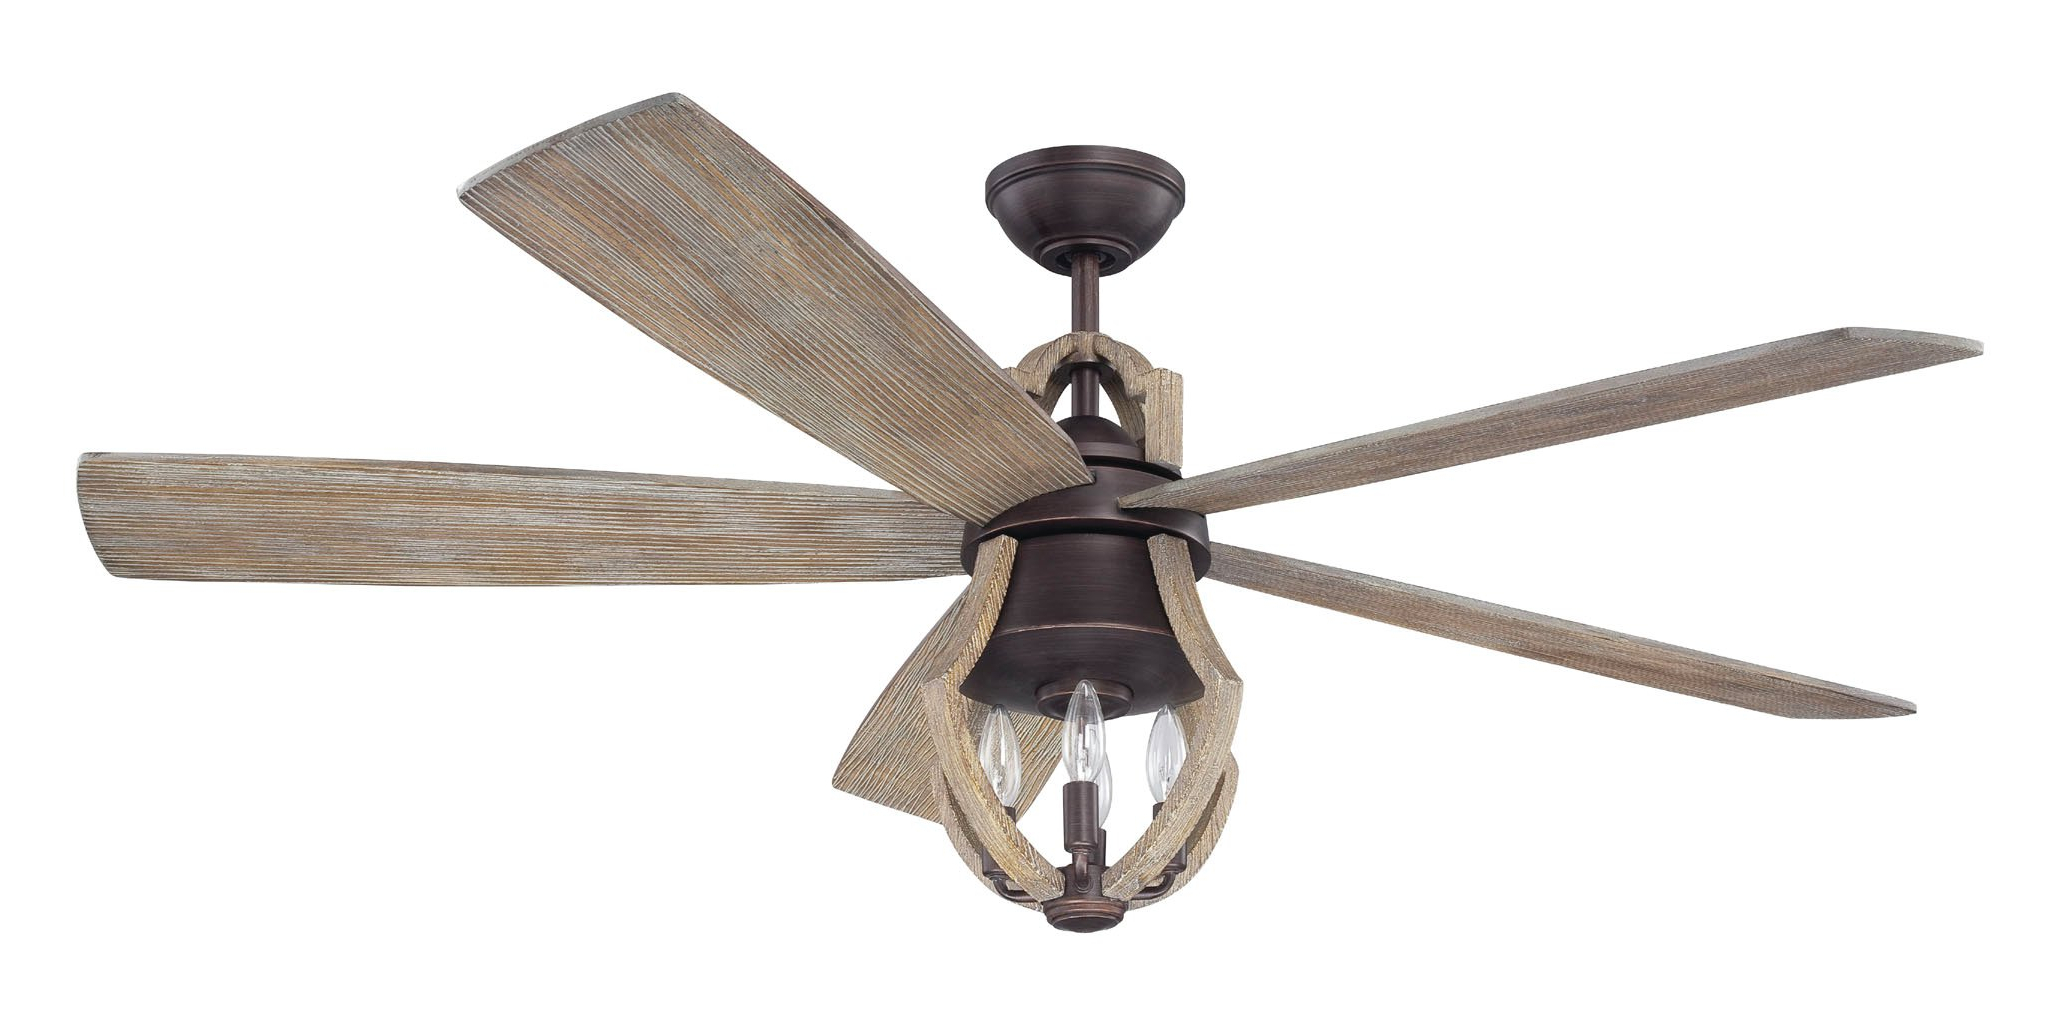 "Wilburton 5 Blade Ceiling Fans With Remote Throughout Famous 56"" Marcoux 5 Blade Ceiling Fan With Remote, Light Kit (View 18 of 20)"